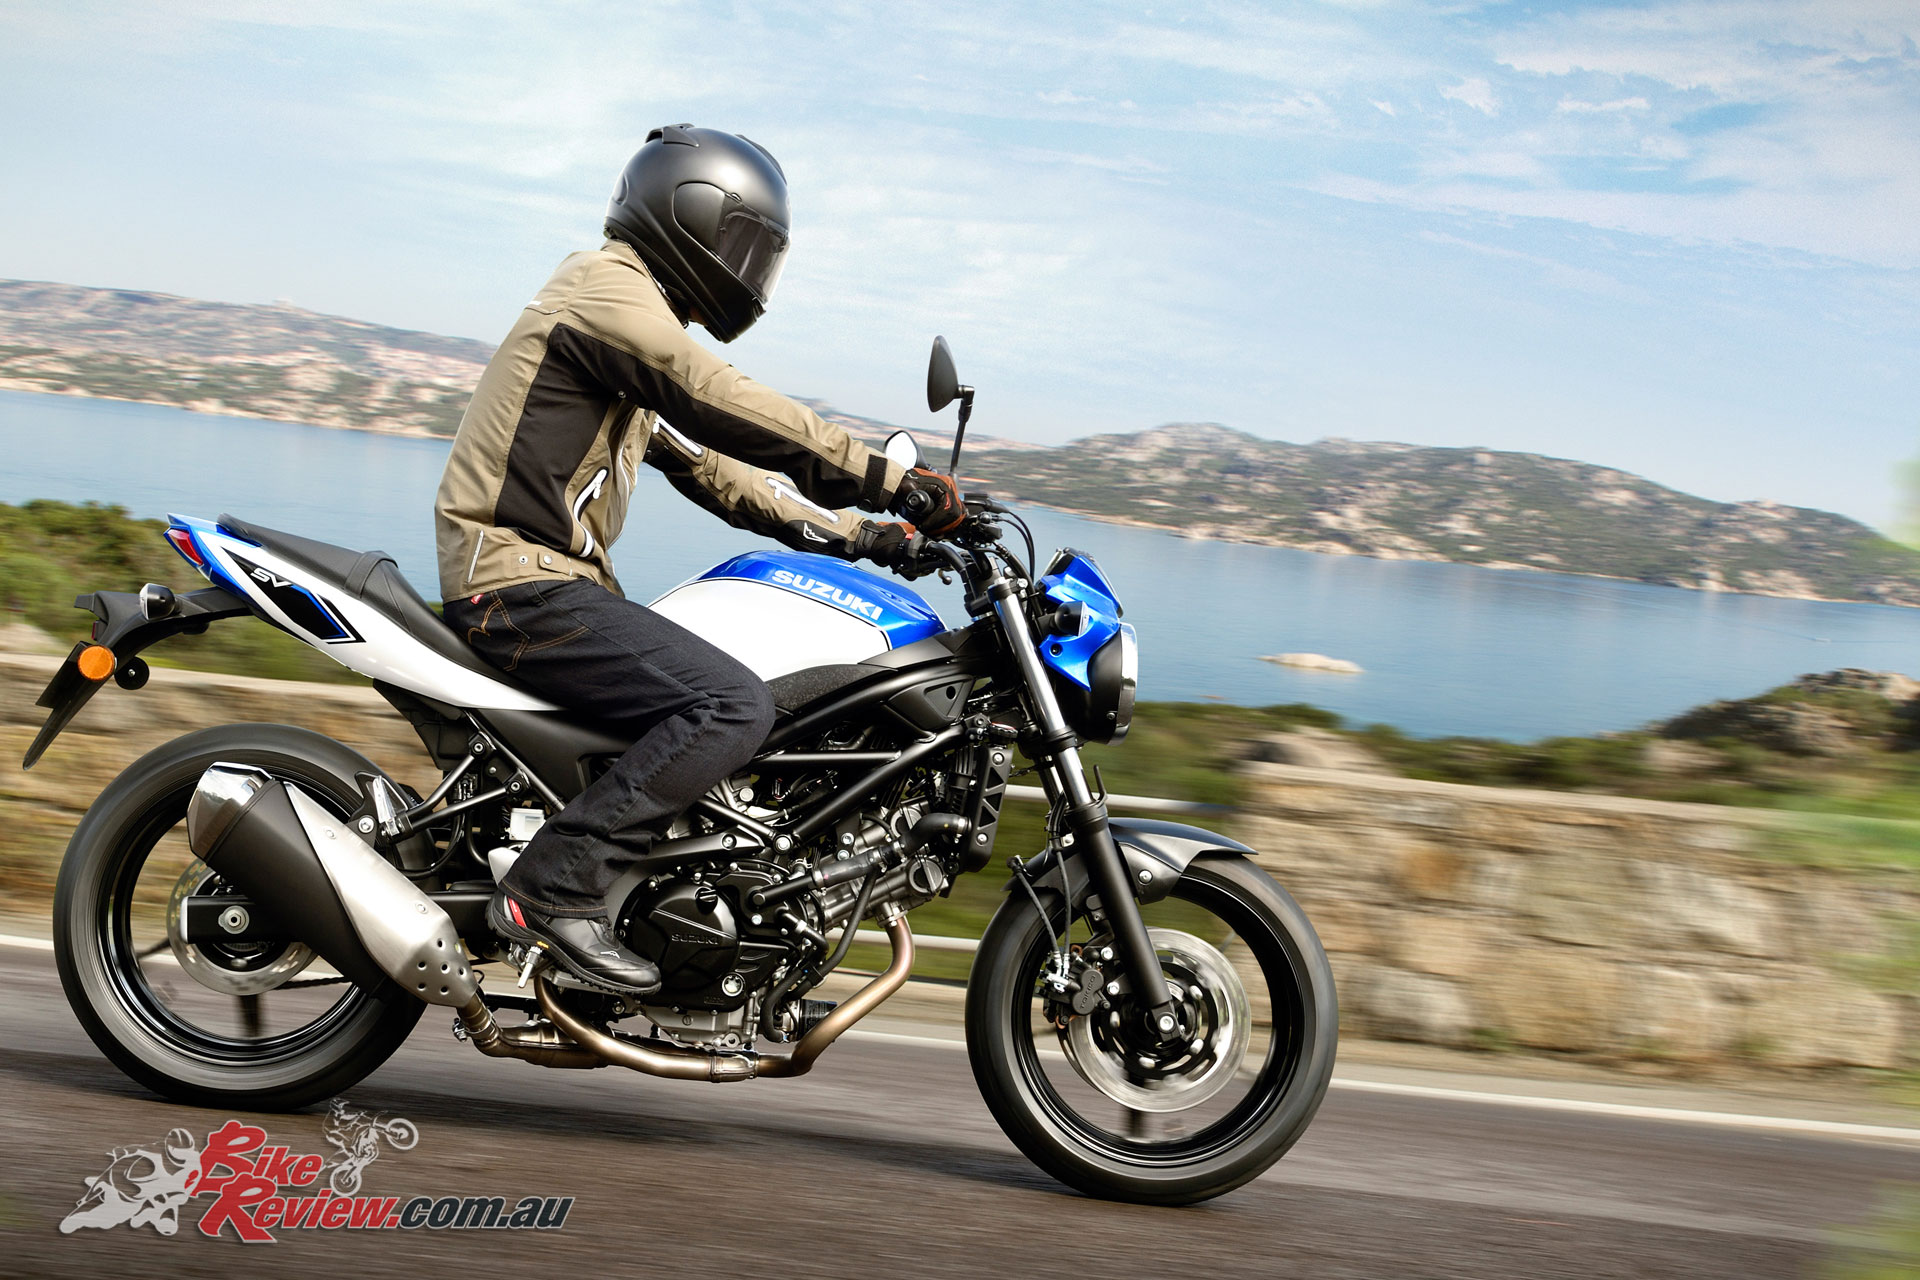 Watch besides 2016 Auto Expo Motorcycles To Expect likewise Sv650 together with 526627862 furthermore Sv650 2016. on sv650